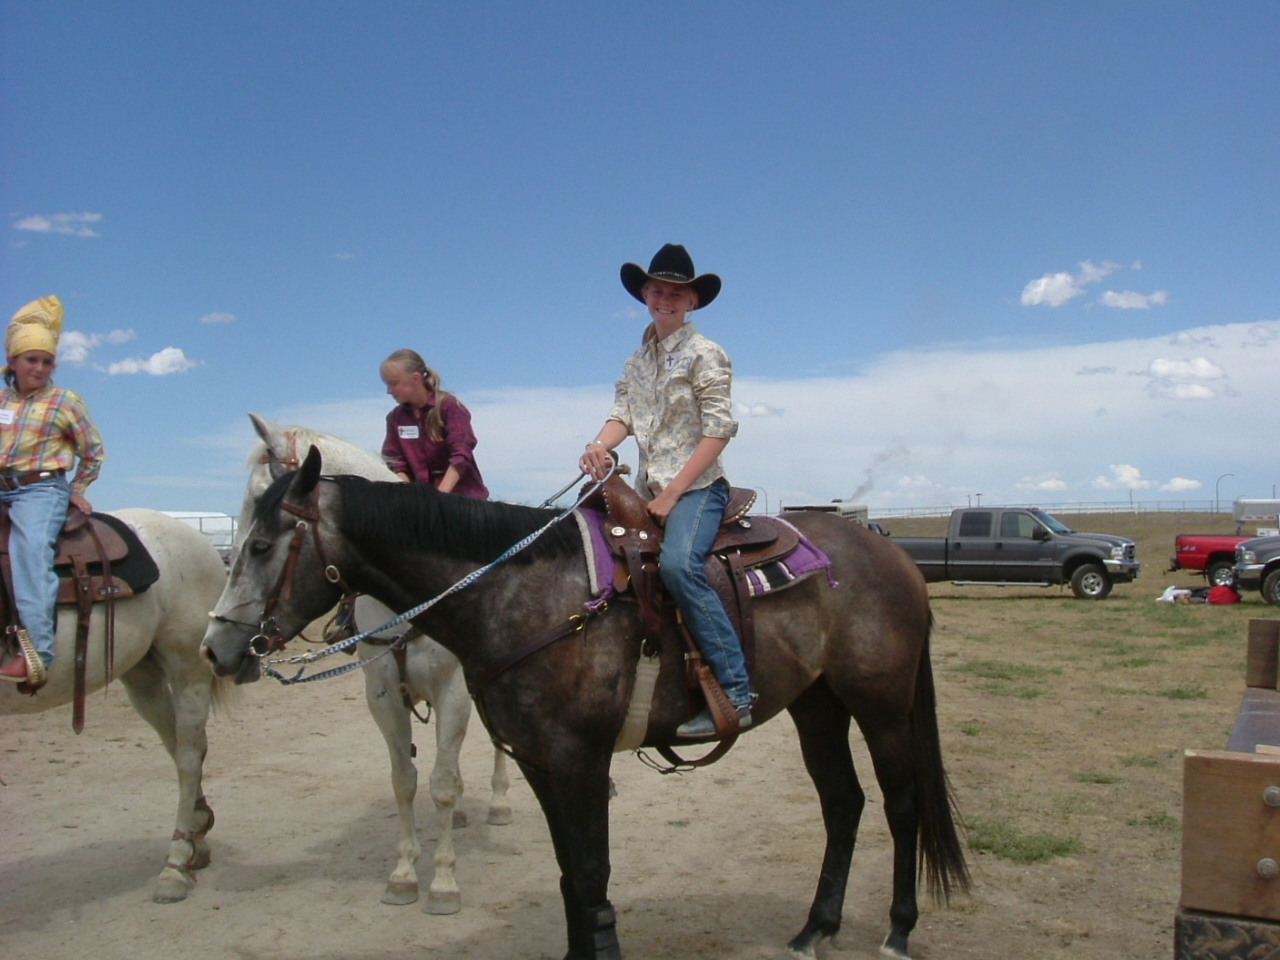 4 year old gelding by Sabre Cord being ridden by 13 year old Mariah Sawyer of Thedford NE at a Rodeo Bible Camp in Gillette Wyoming.